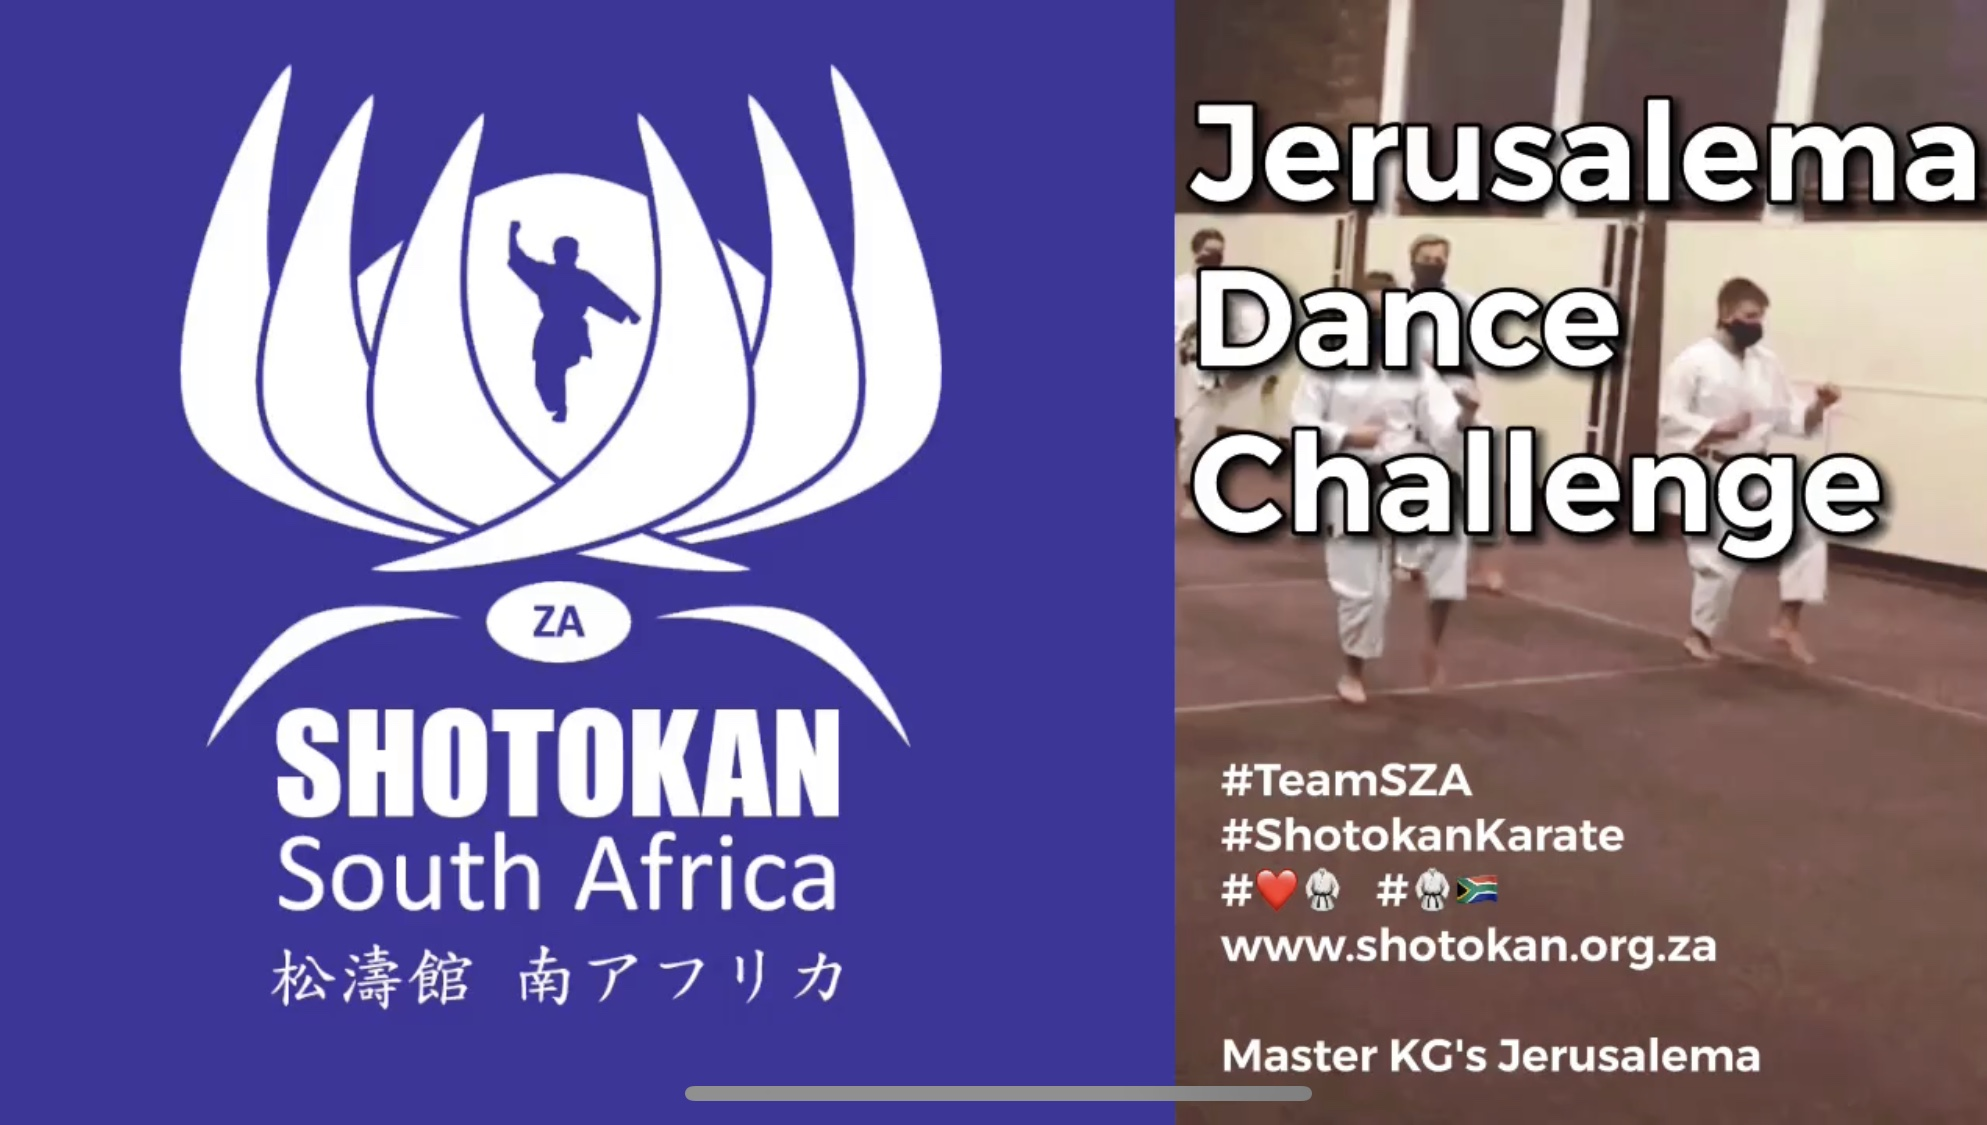 Samurai takes part in the #JerusalemaDanceChallenge